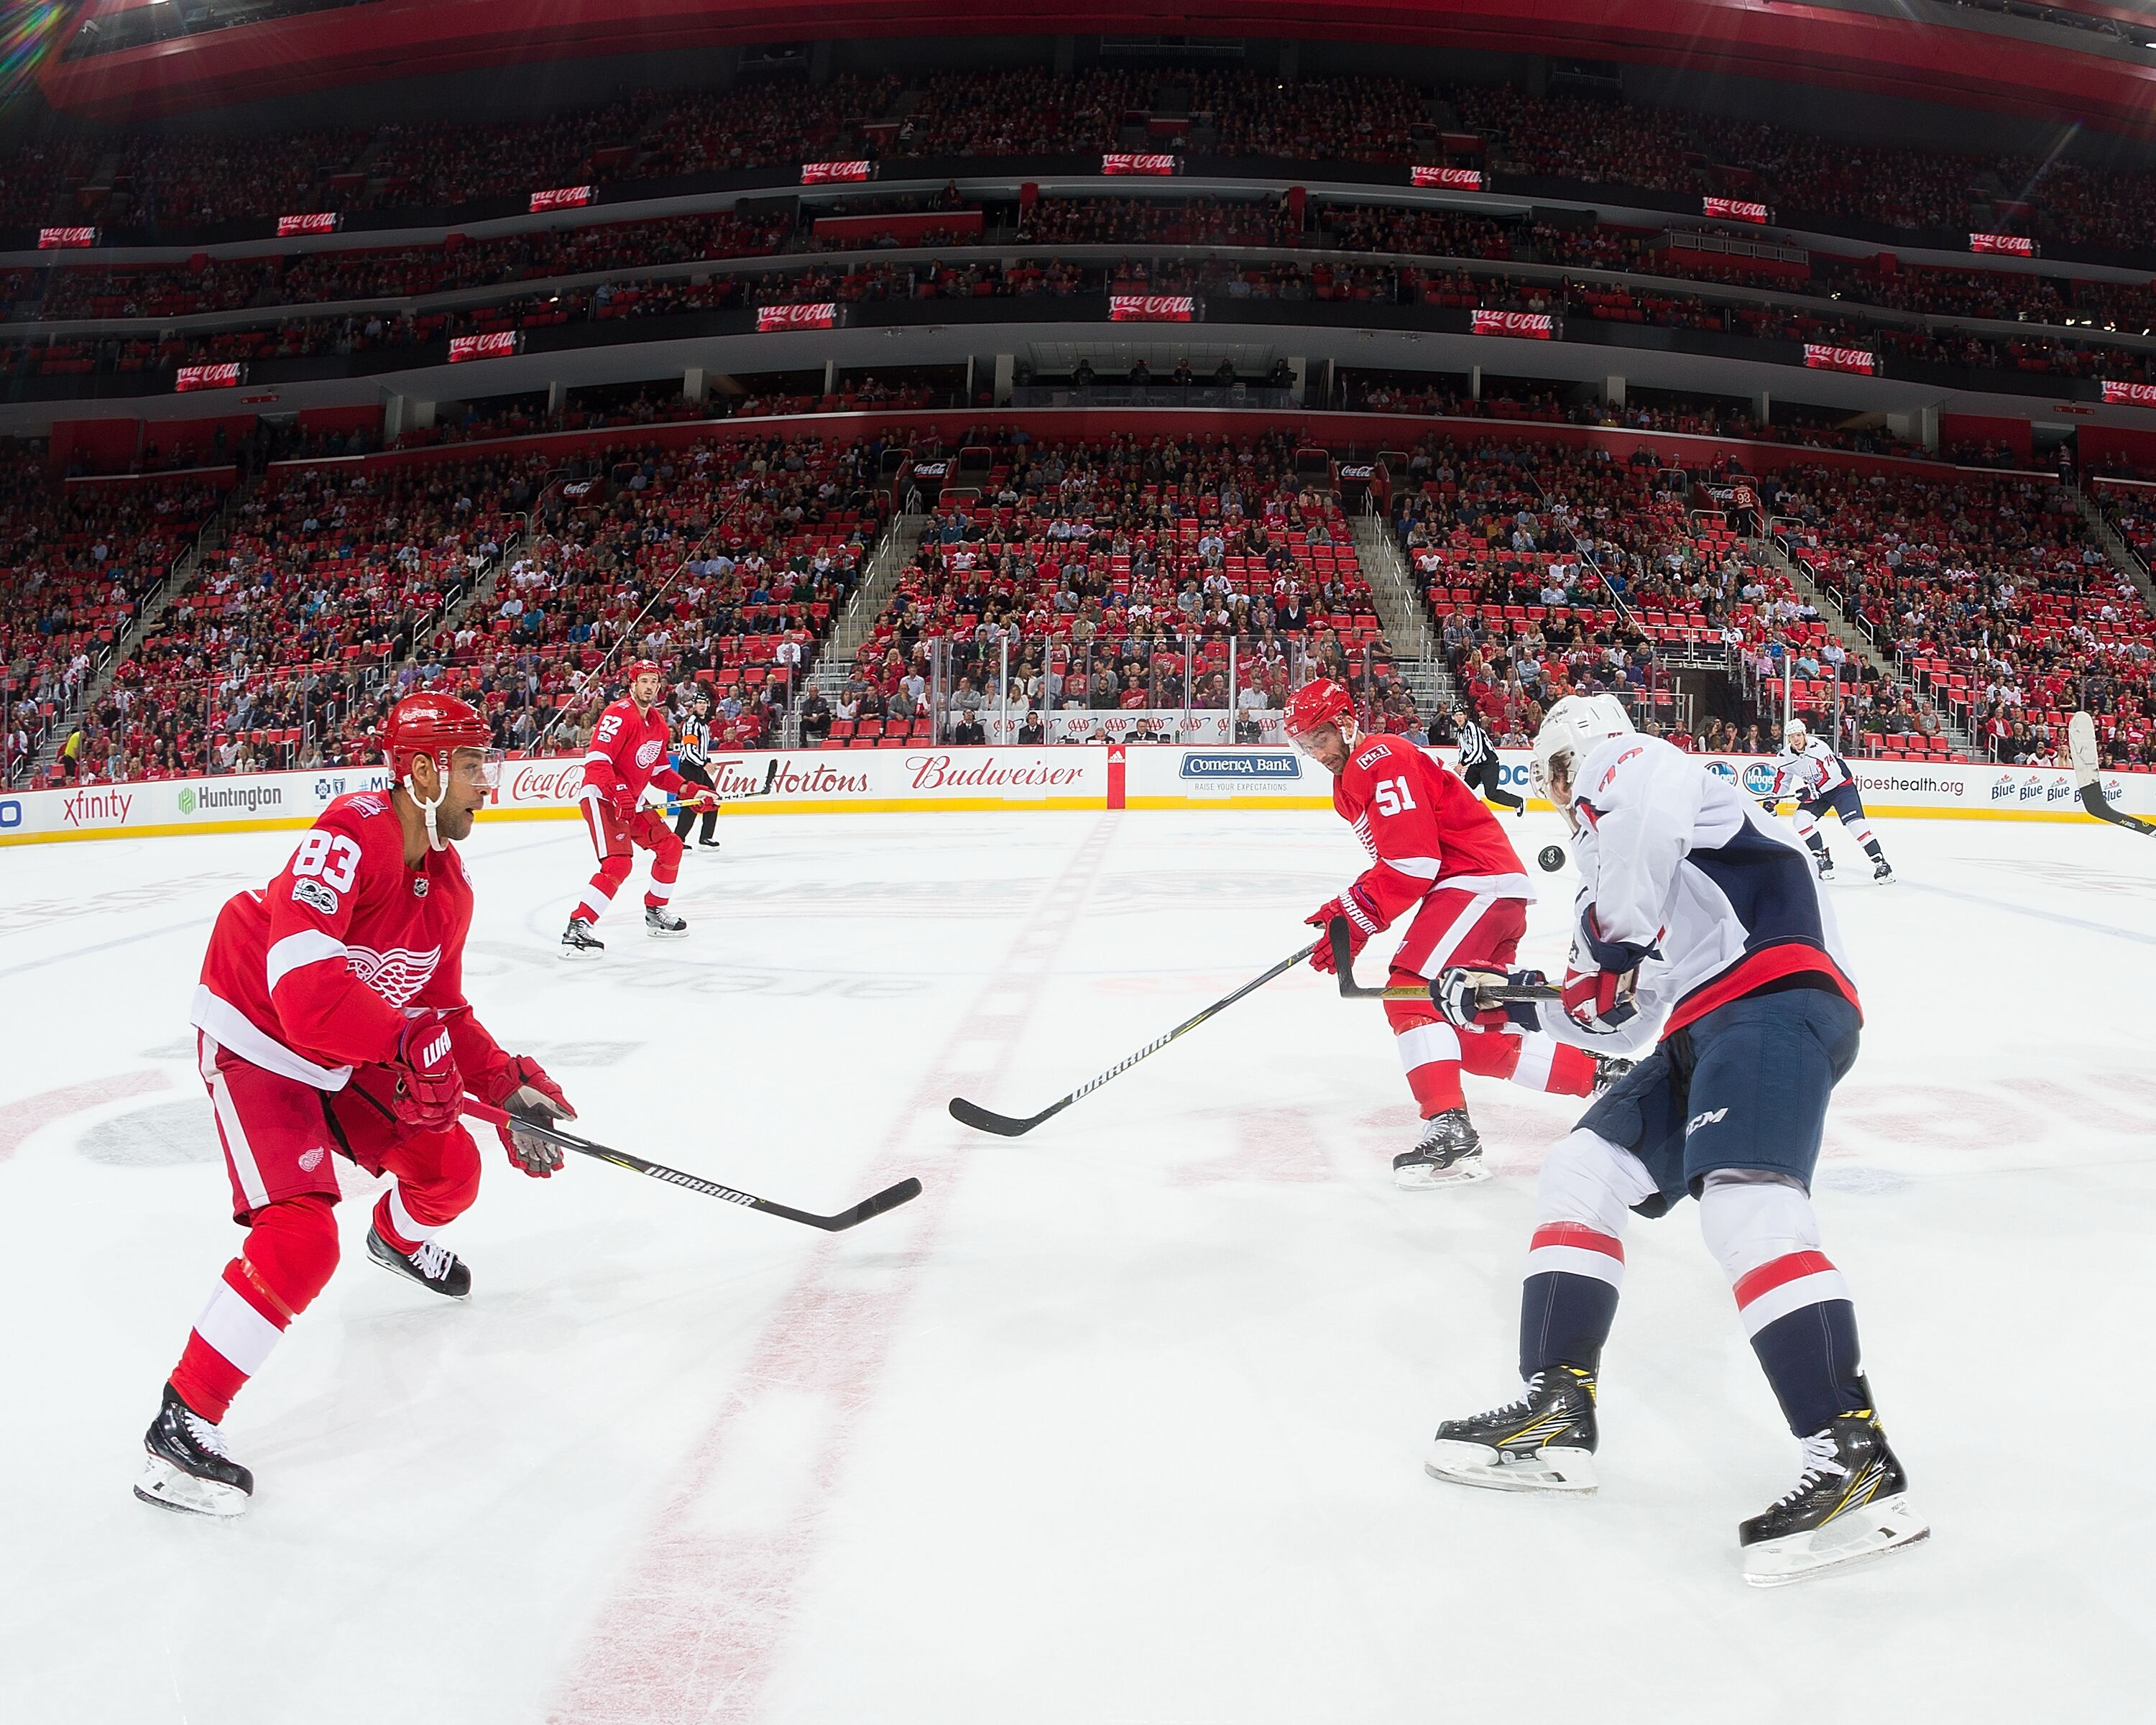 864088308-washington-capitals-v-detroit-red-wings.jpg